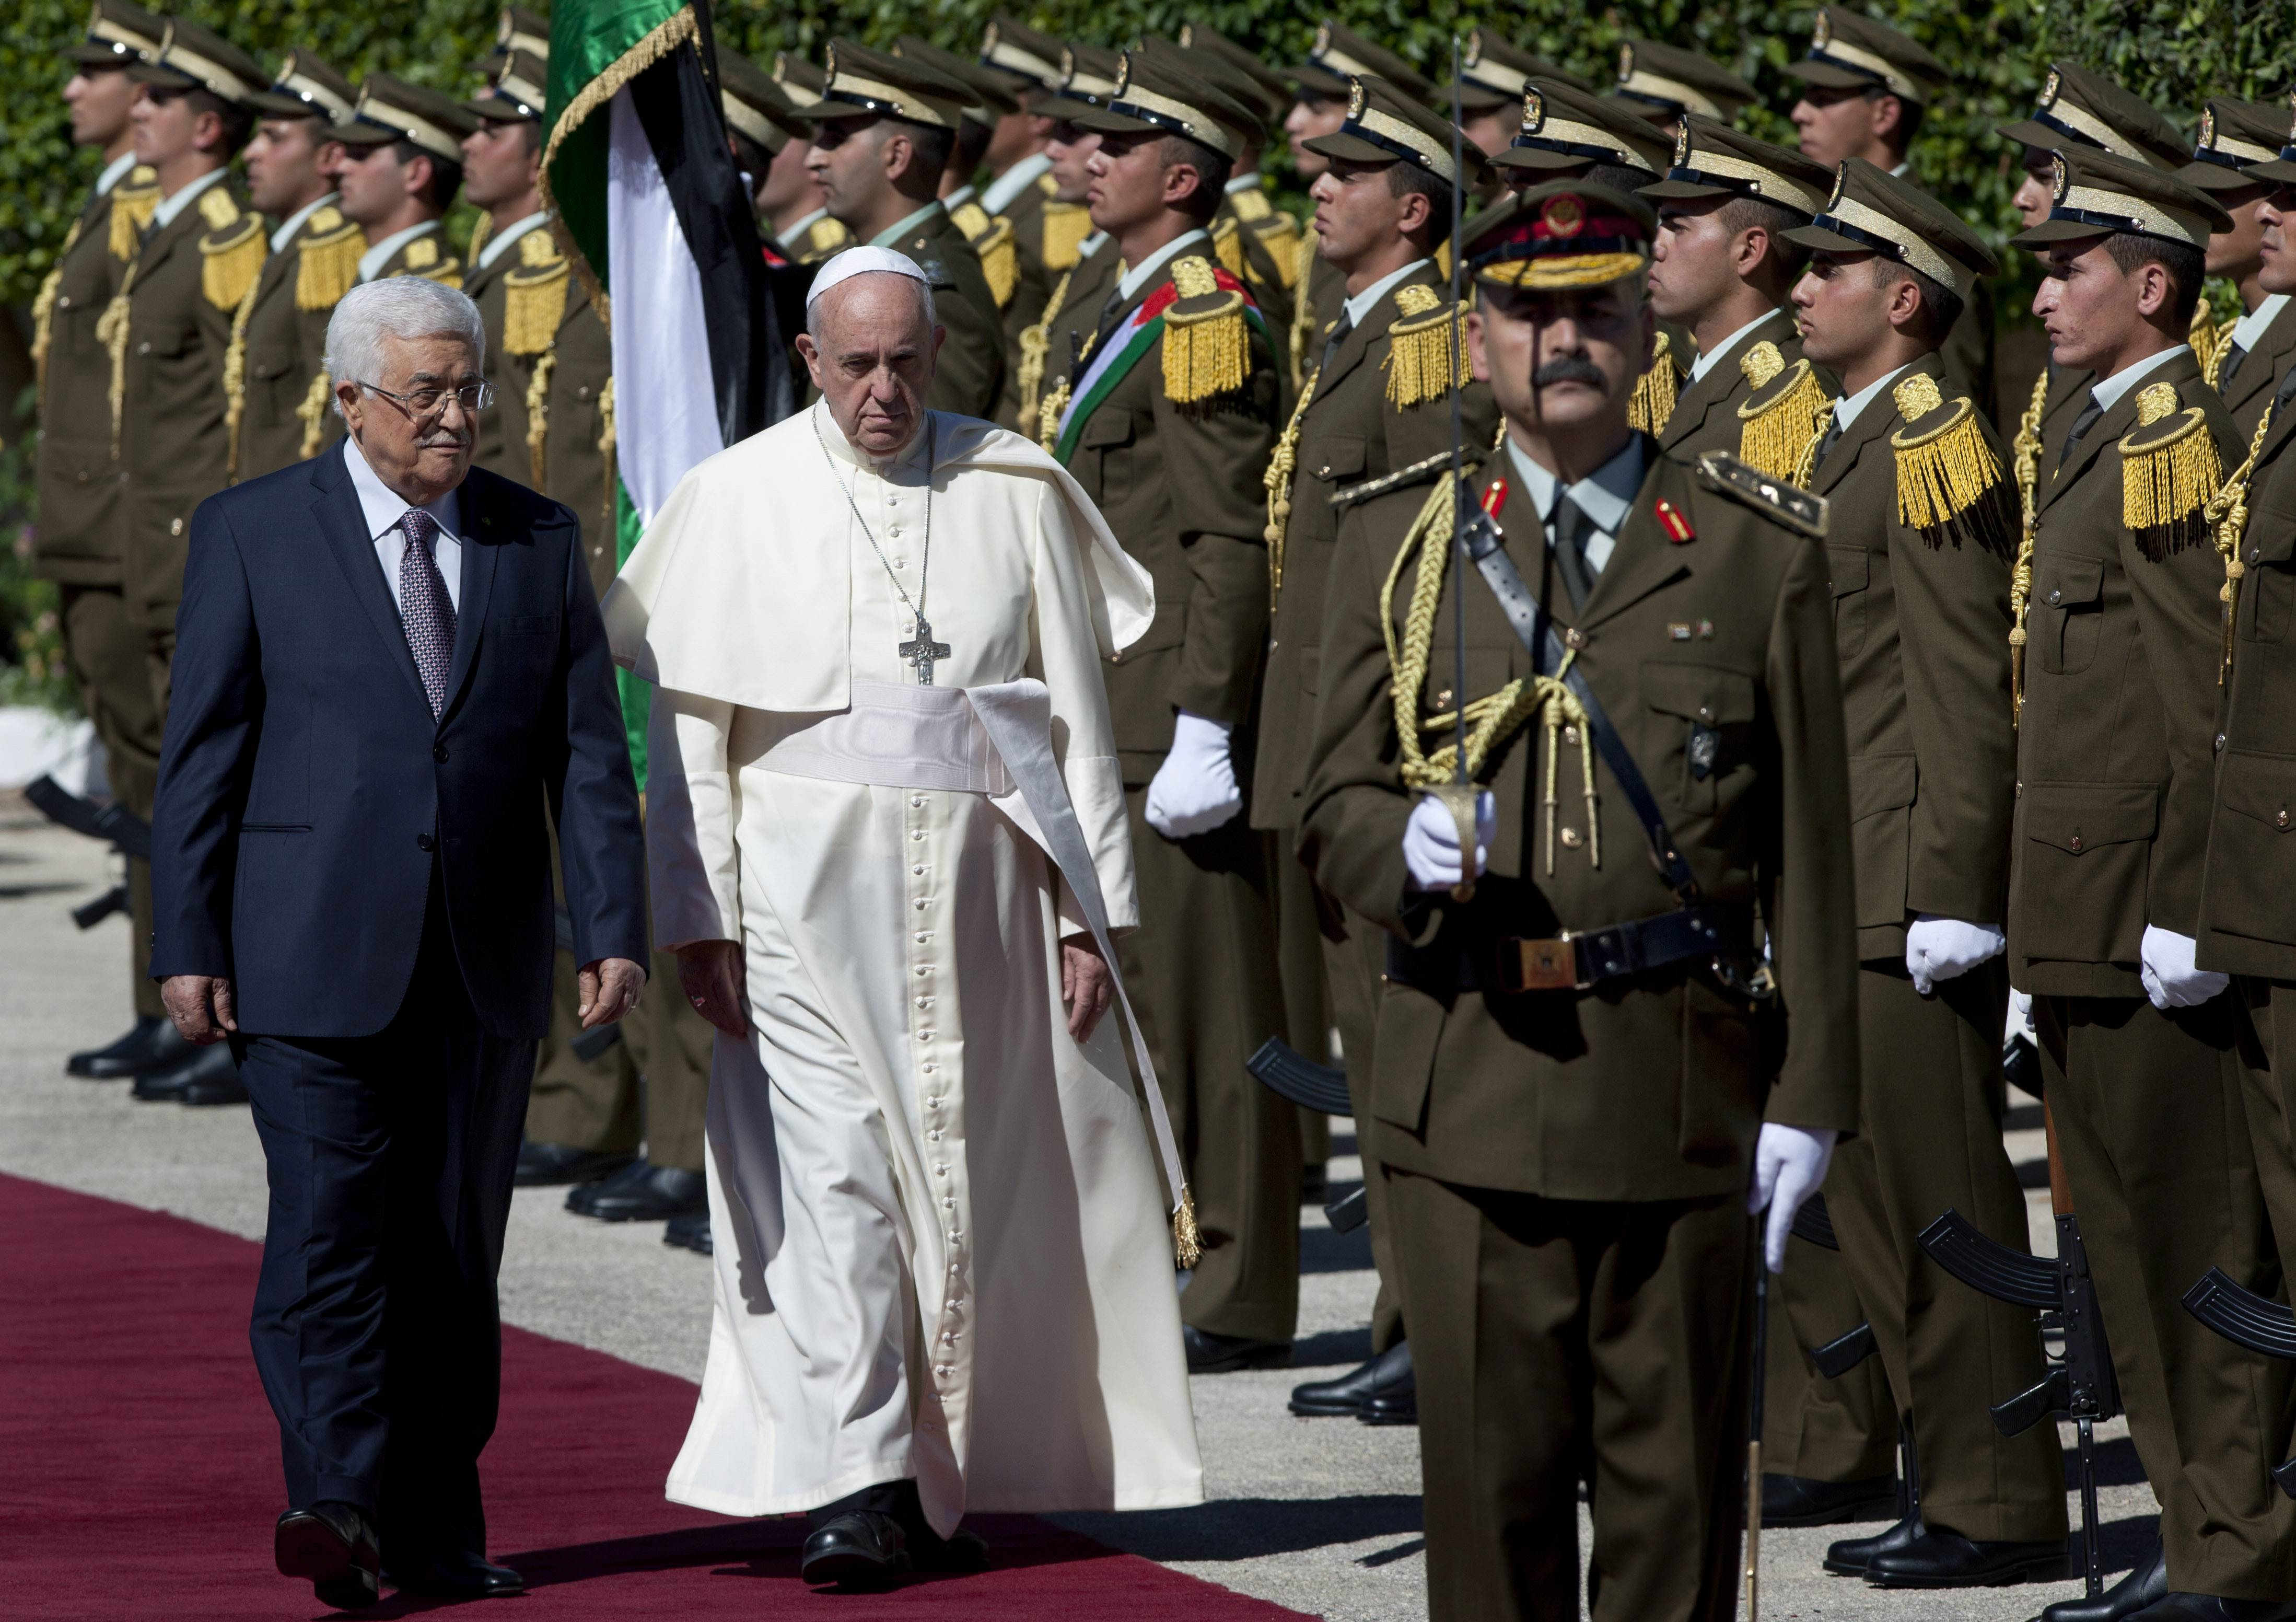 Palestinian President Mahmoud Abbas, left, and Pope Francis inspect an honor guard as Francis arrives at the Palestinian Authority headquarters in the West Bank city of Bethlehem on Sunday.